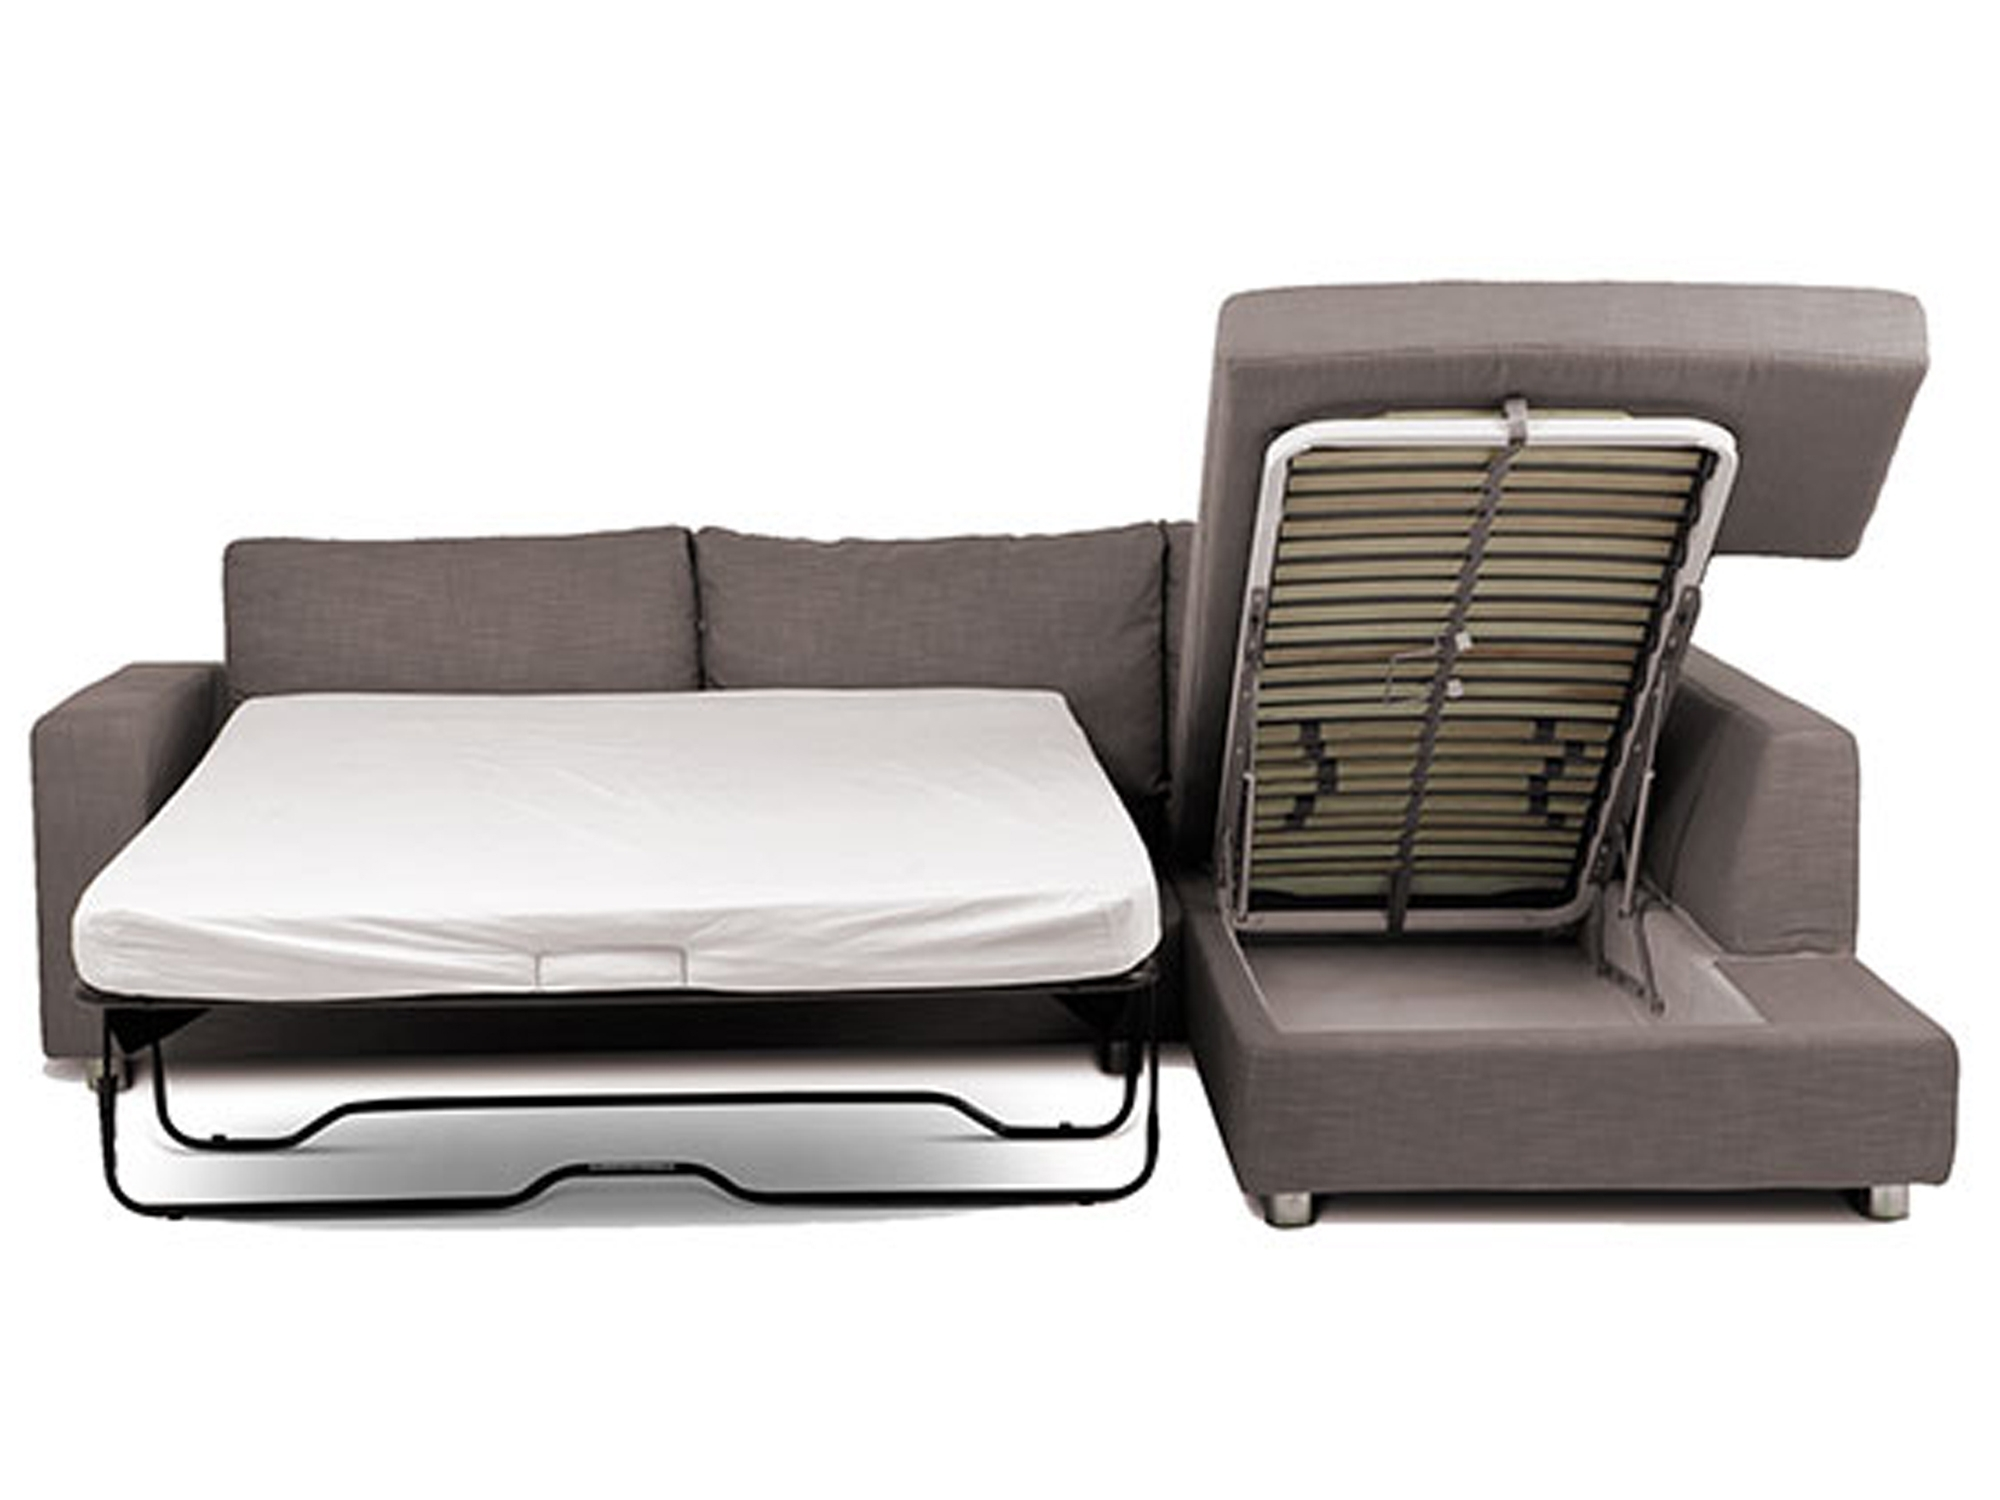 Sofas: Classic Meets Contemporary Chaise Sofa Bed For Ideal Living For Recent Chaise Lounge Mattress (View 10 of 15)